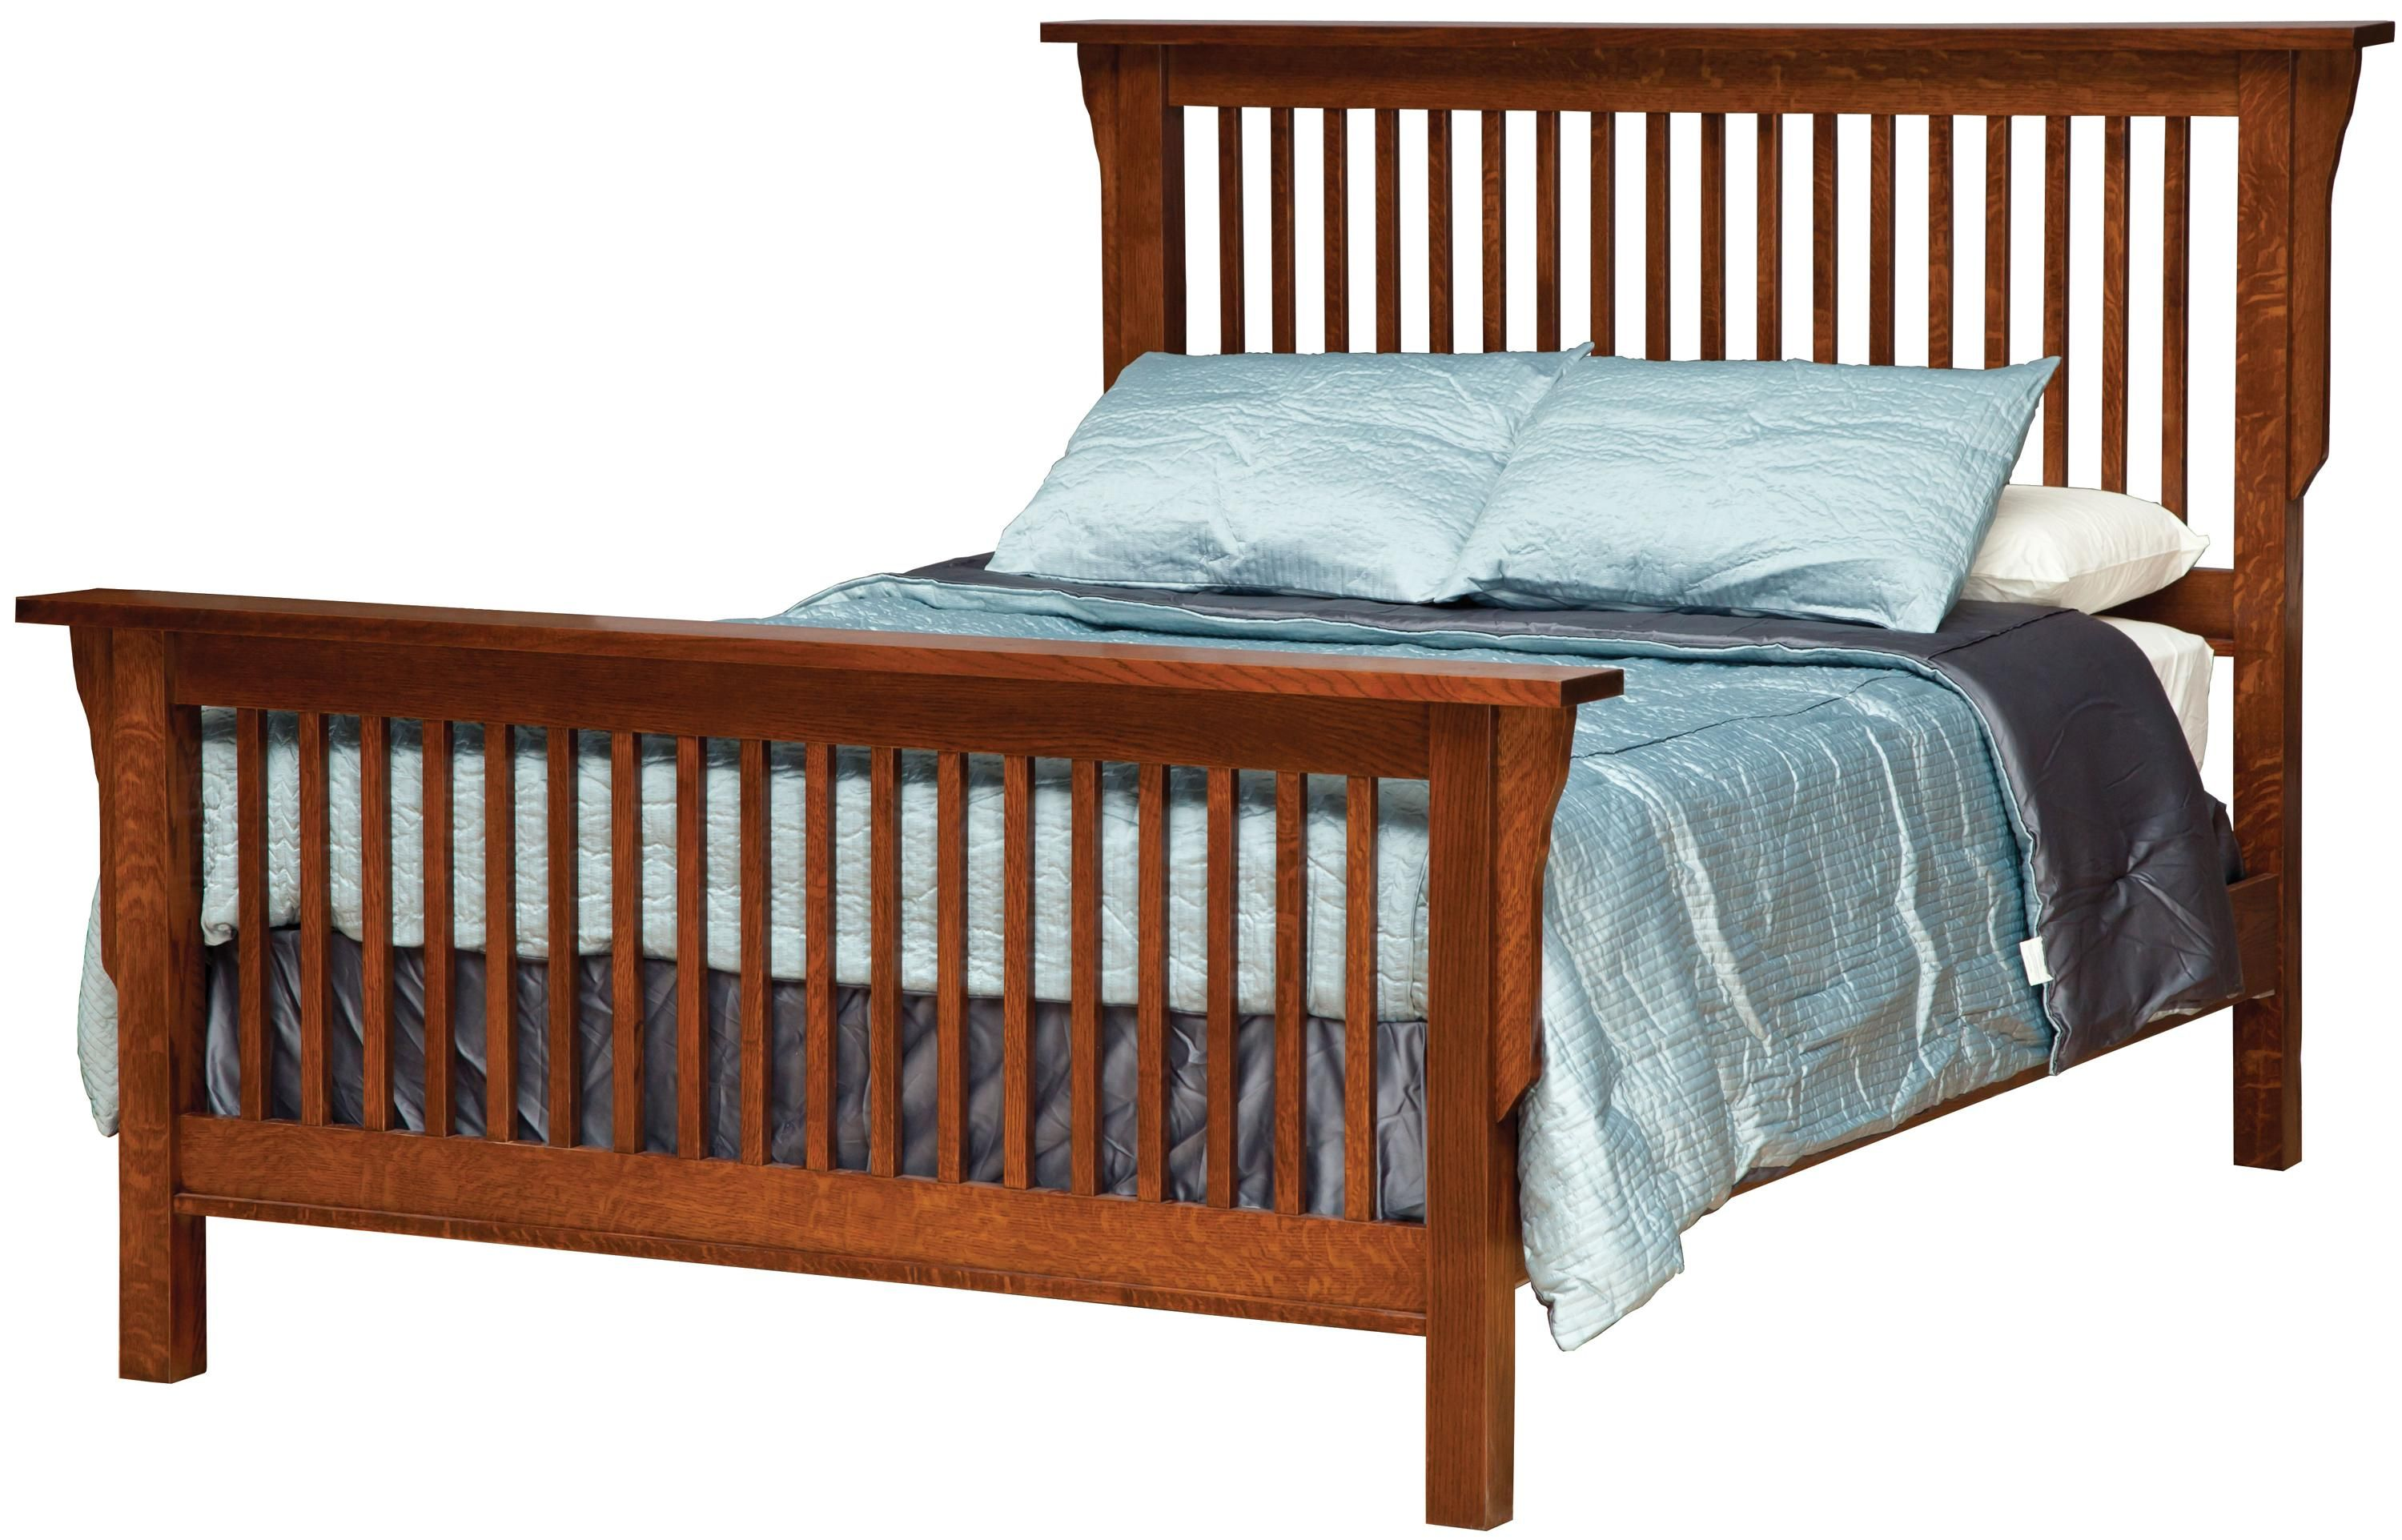 California king mission style frame bed with headboard footboard slat detail